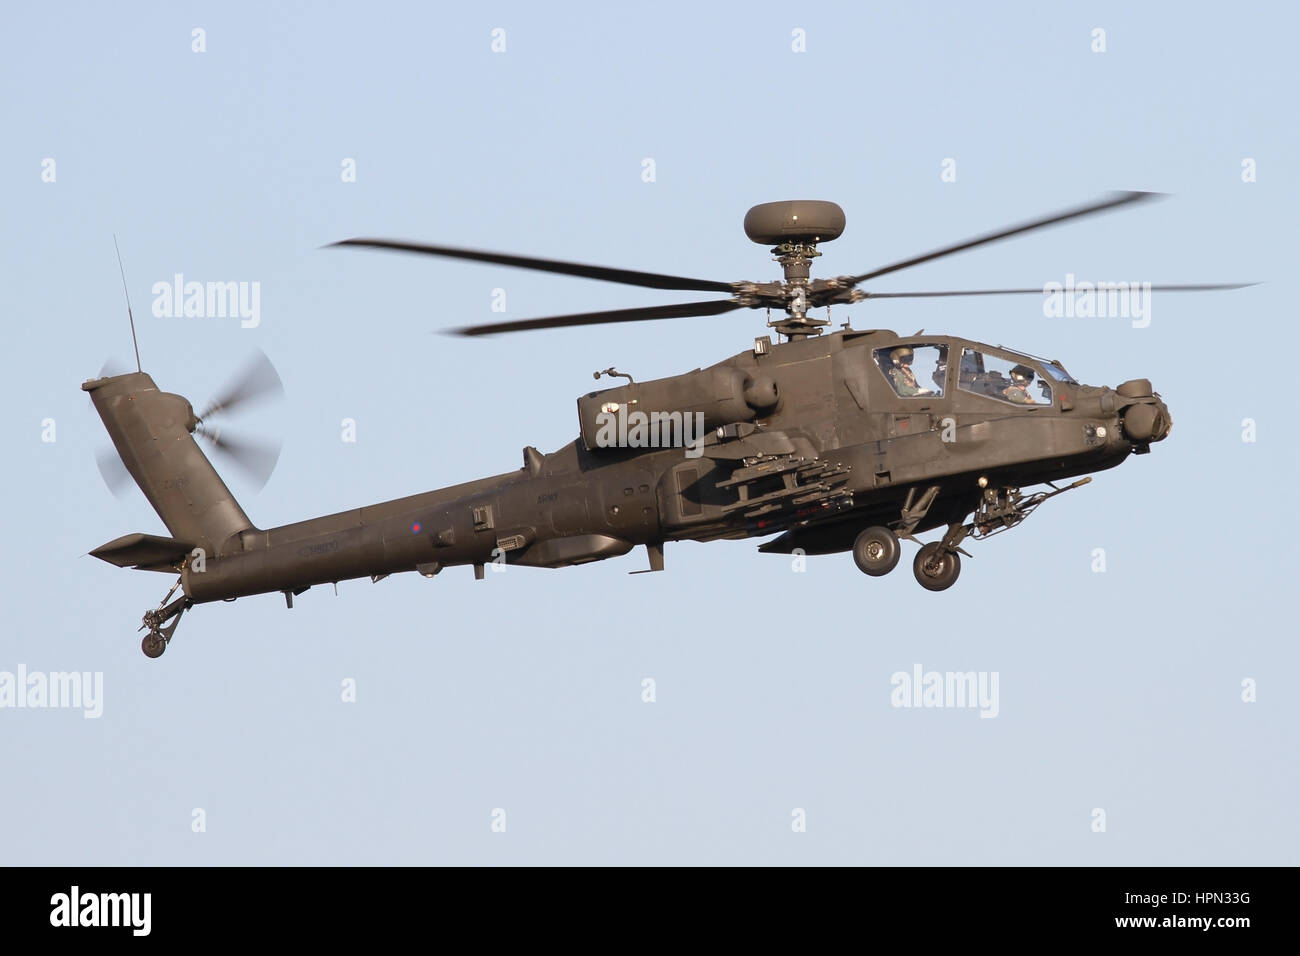 Army Air Corps Apache on the approach for runway 23 at Wattisham in the early evening sunlight. - Stock Image